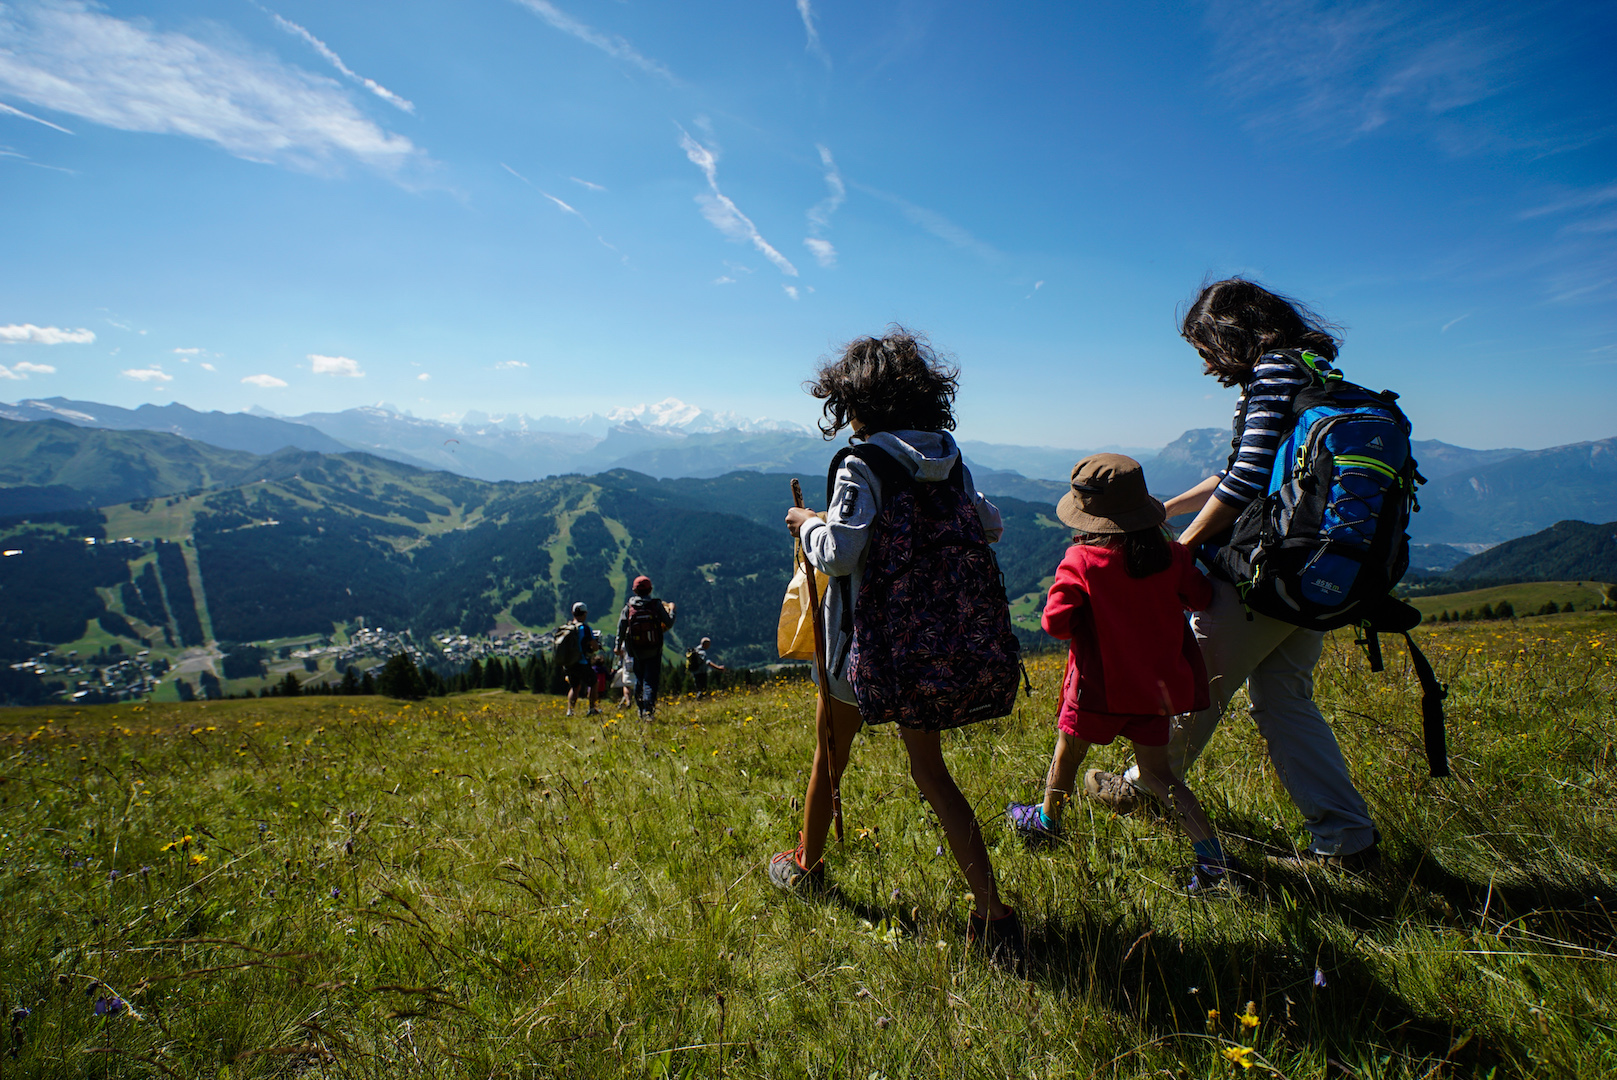 Family going for a walk in summer with mountains, blue sky and meadow in the background